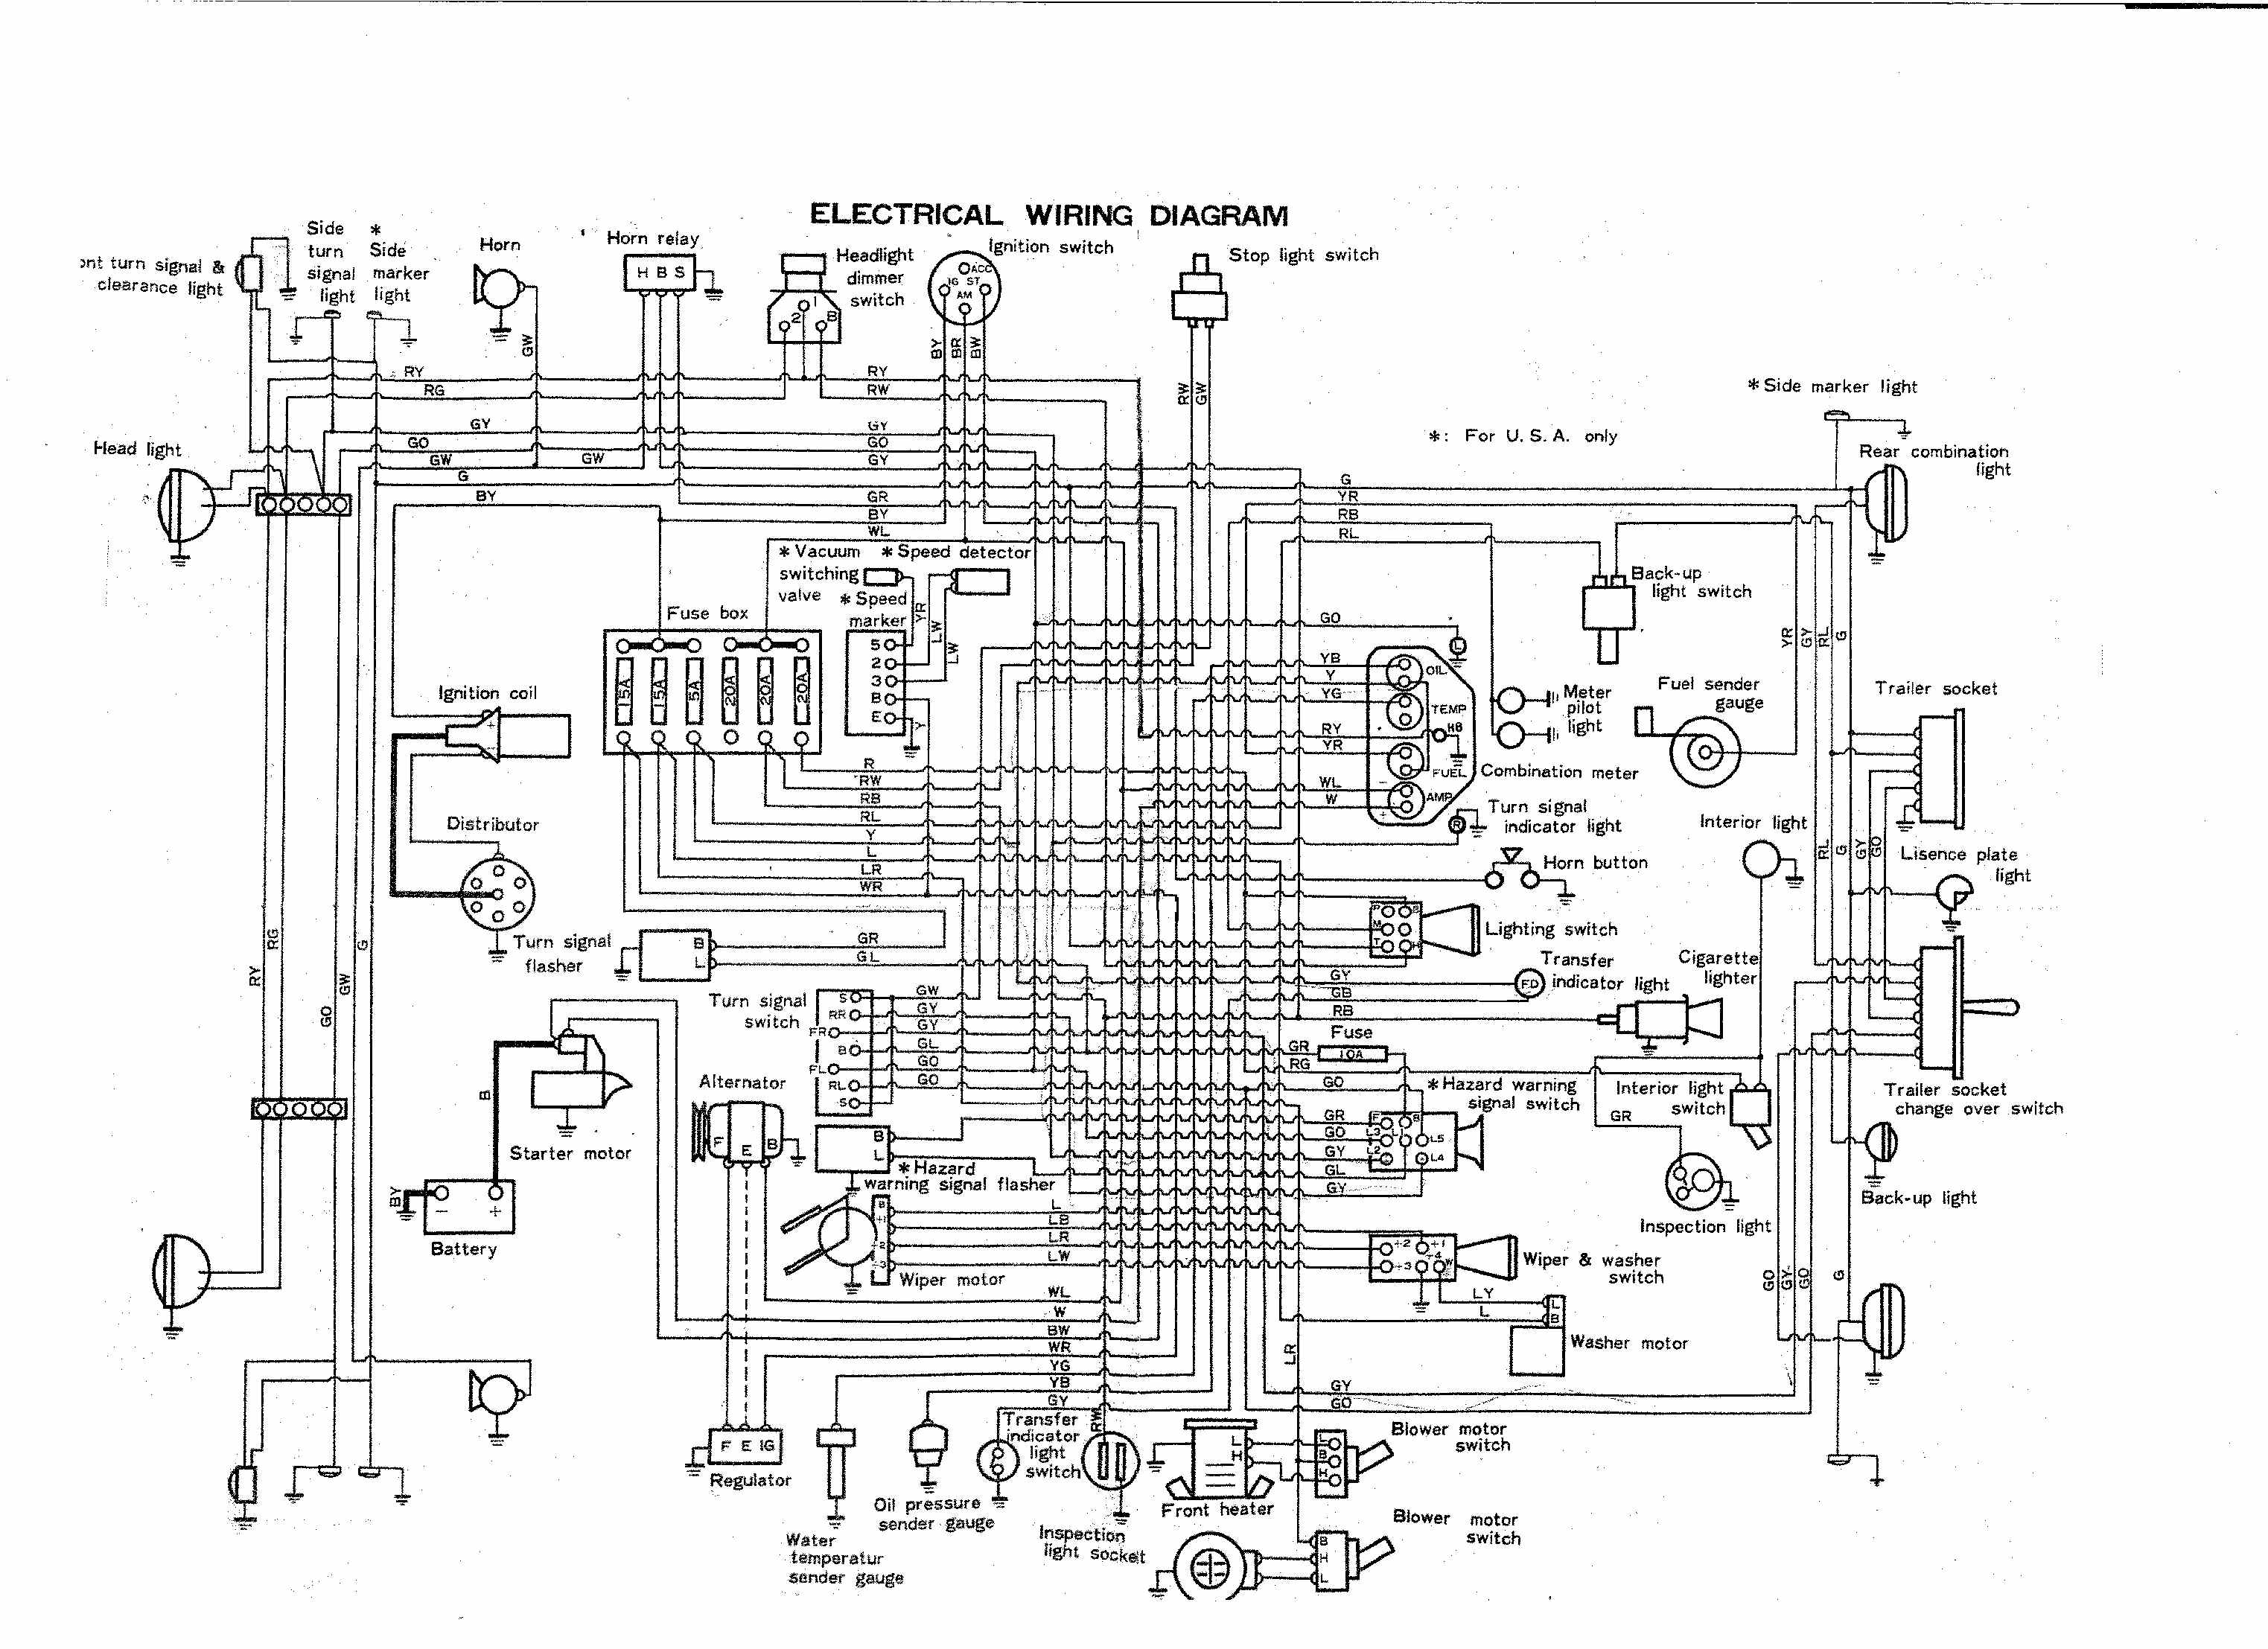 Fj40 Wiring Diagram Painless Guide And Troubleshooting Of Harness Diagrams Data Today Rh 34 Unimath De 1972 76